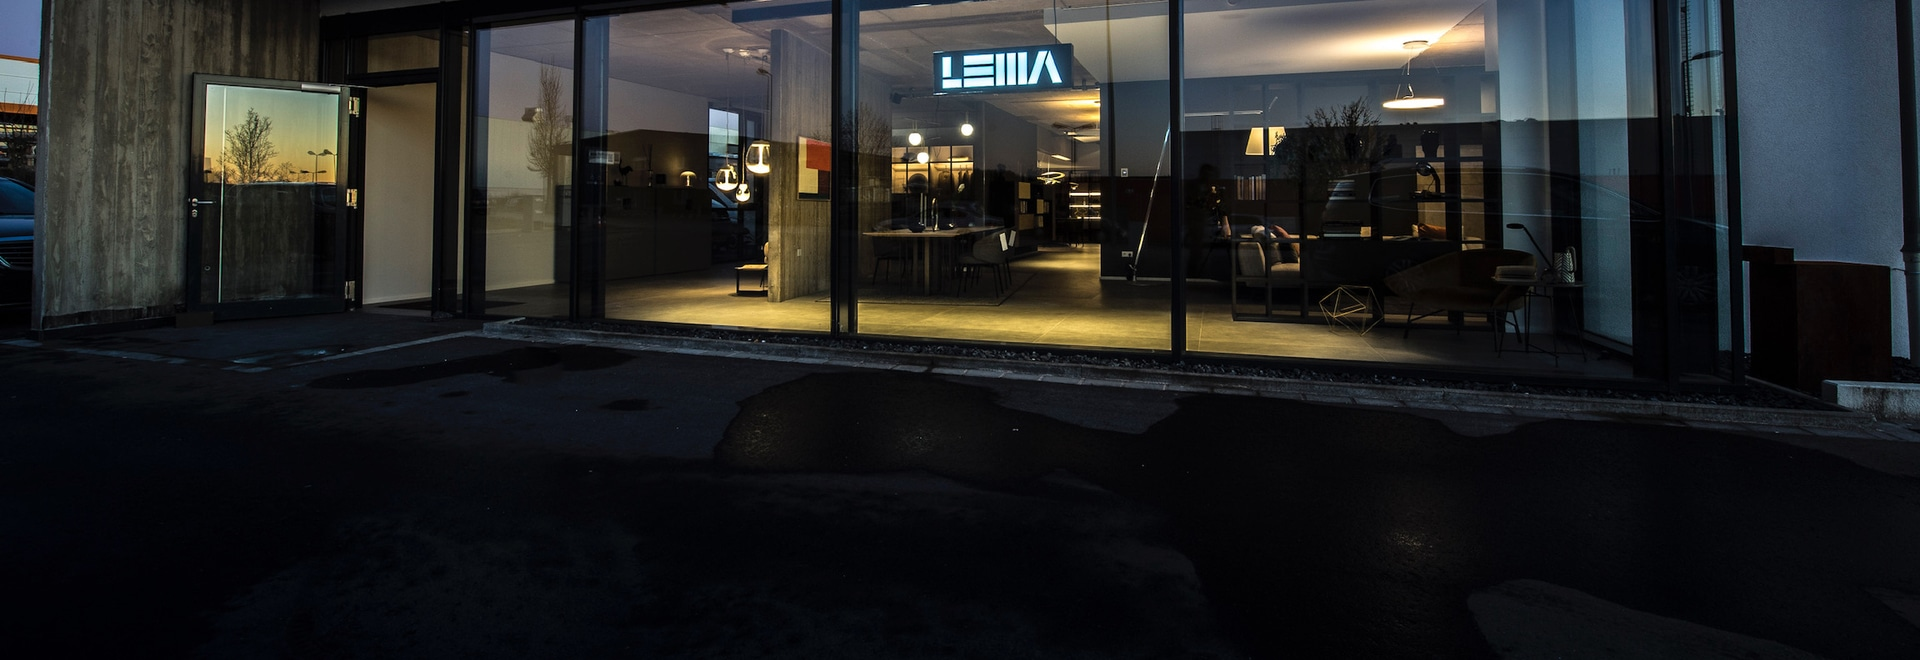 LEMA LUXEMBOURG FLAGSHIPSTORE